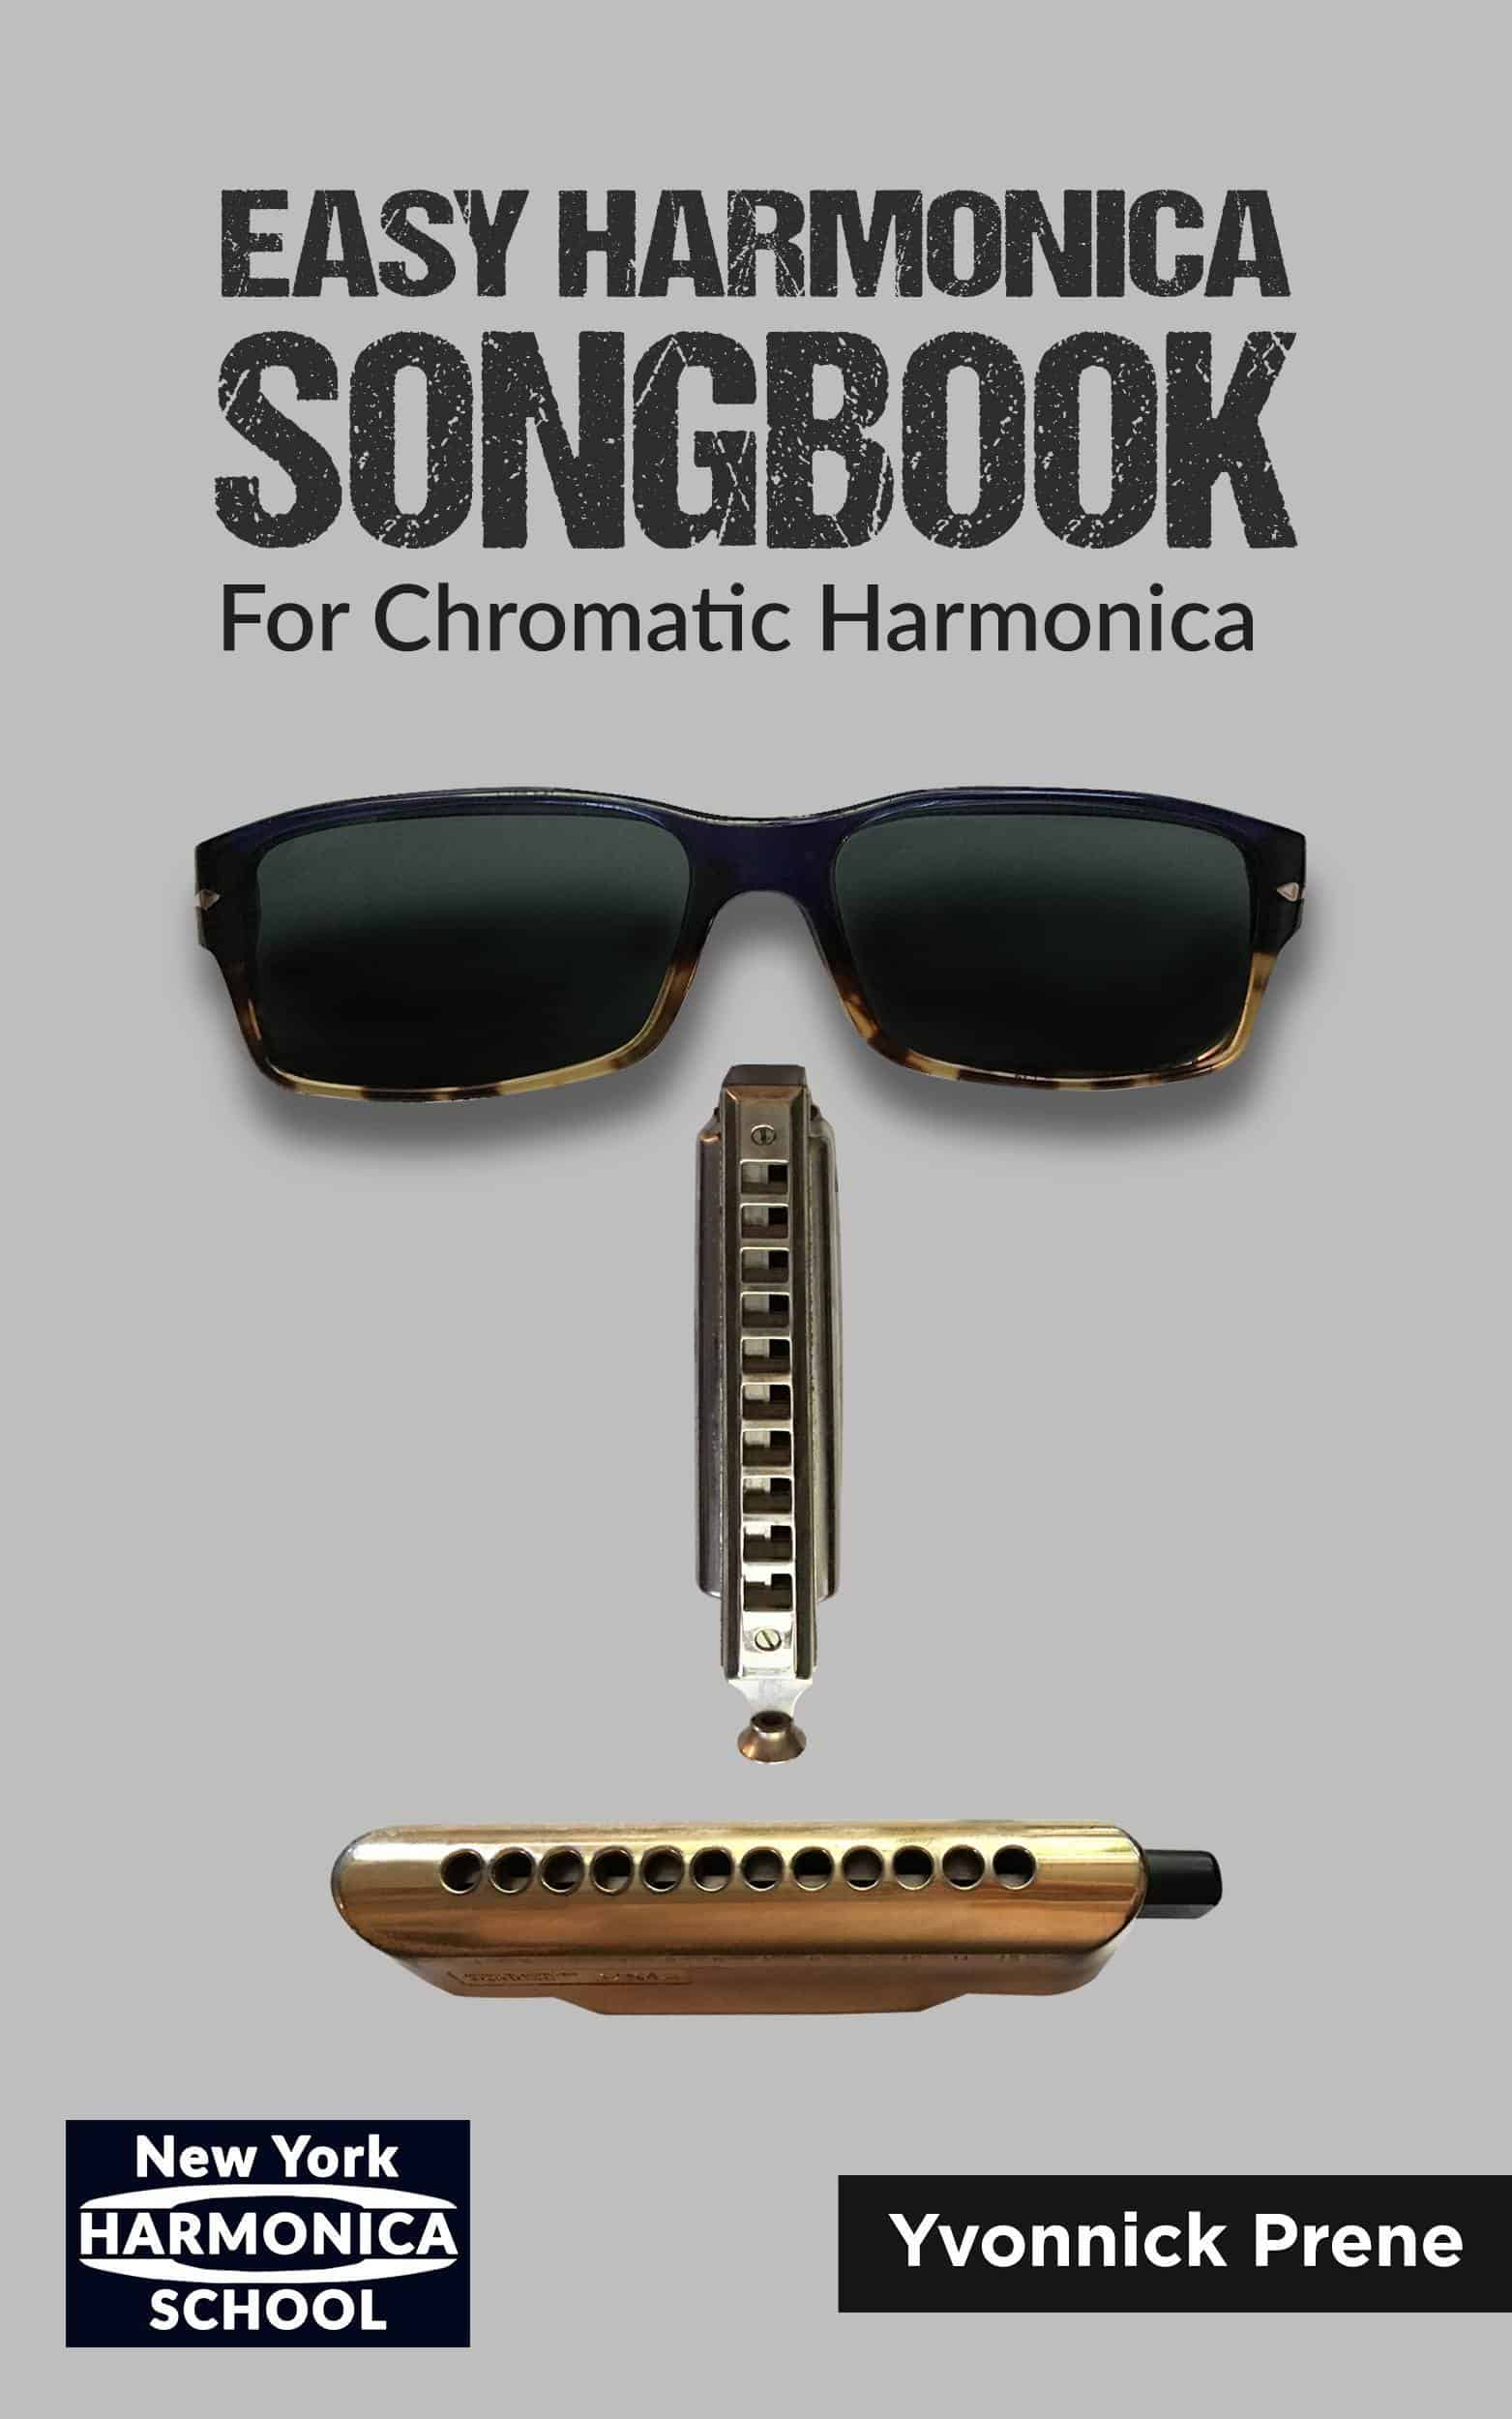 Harmonica Books Methods - New York Harmonica School